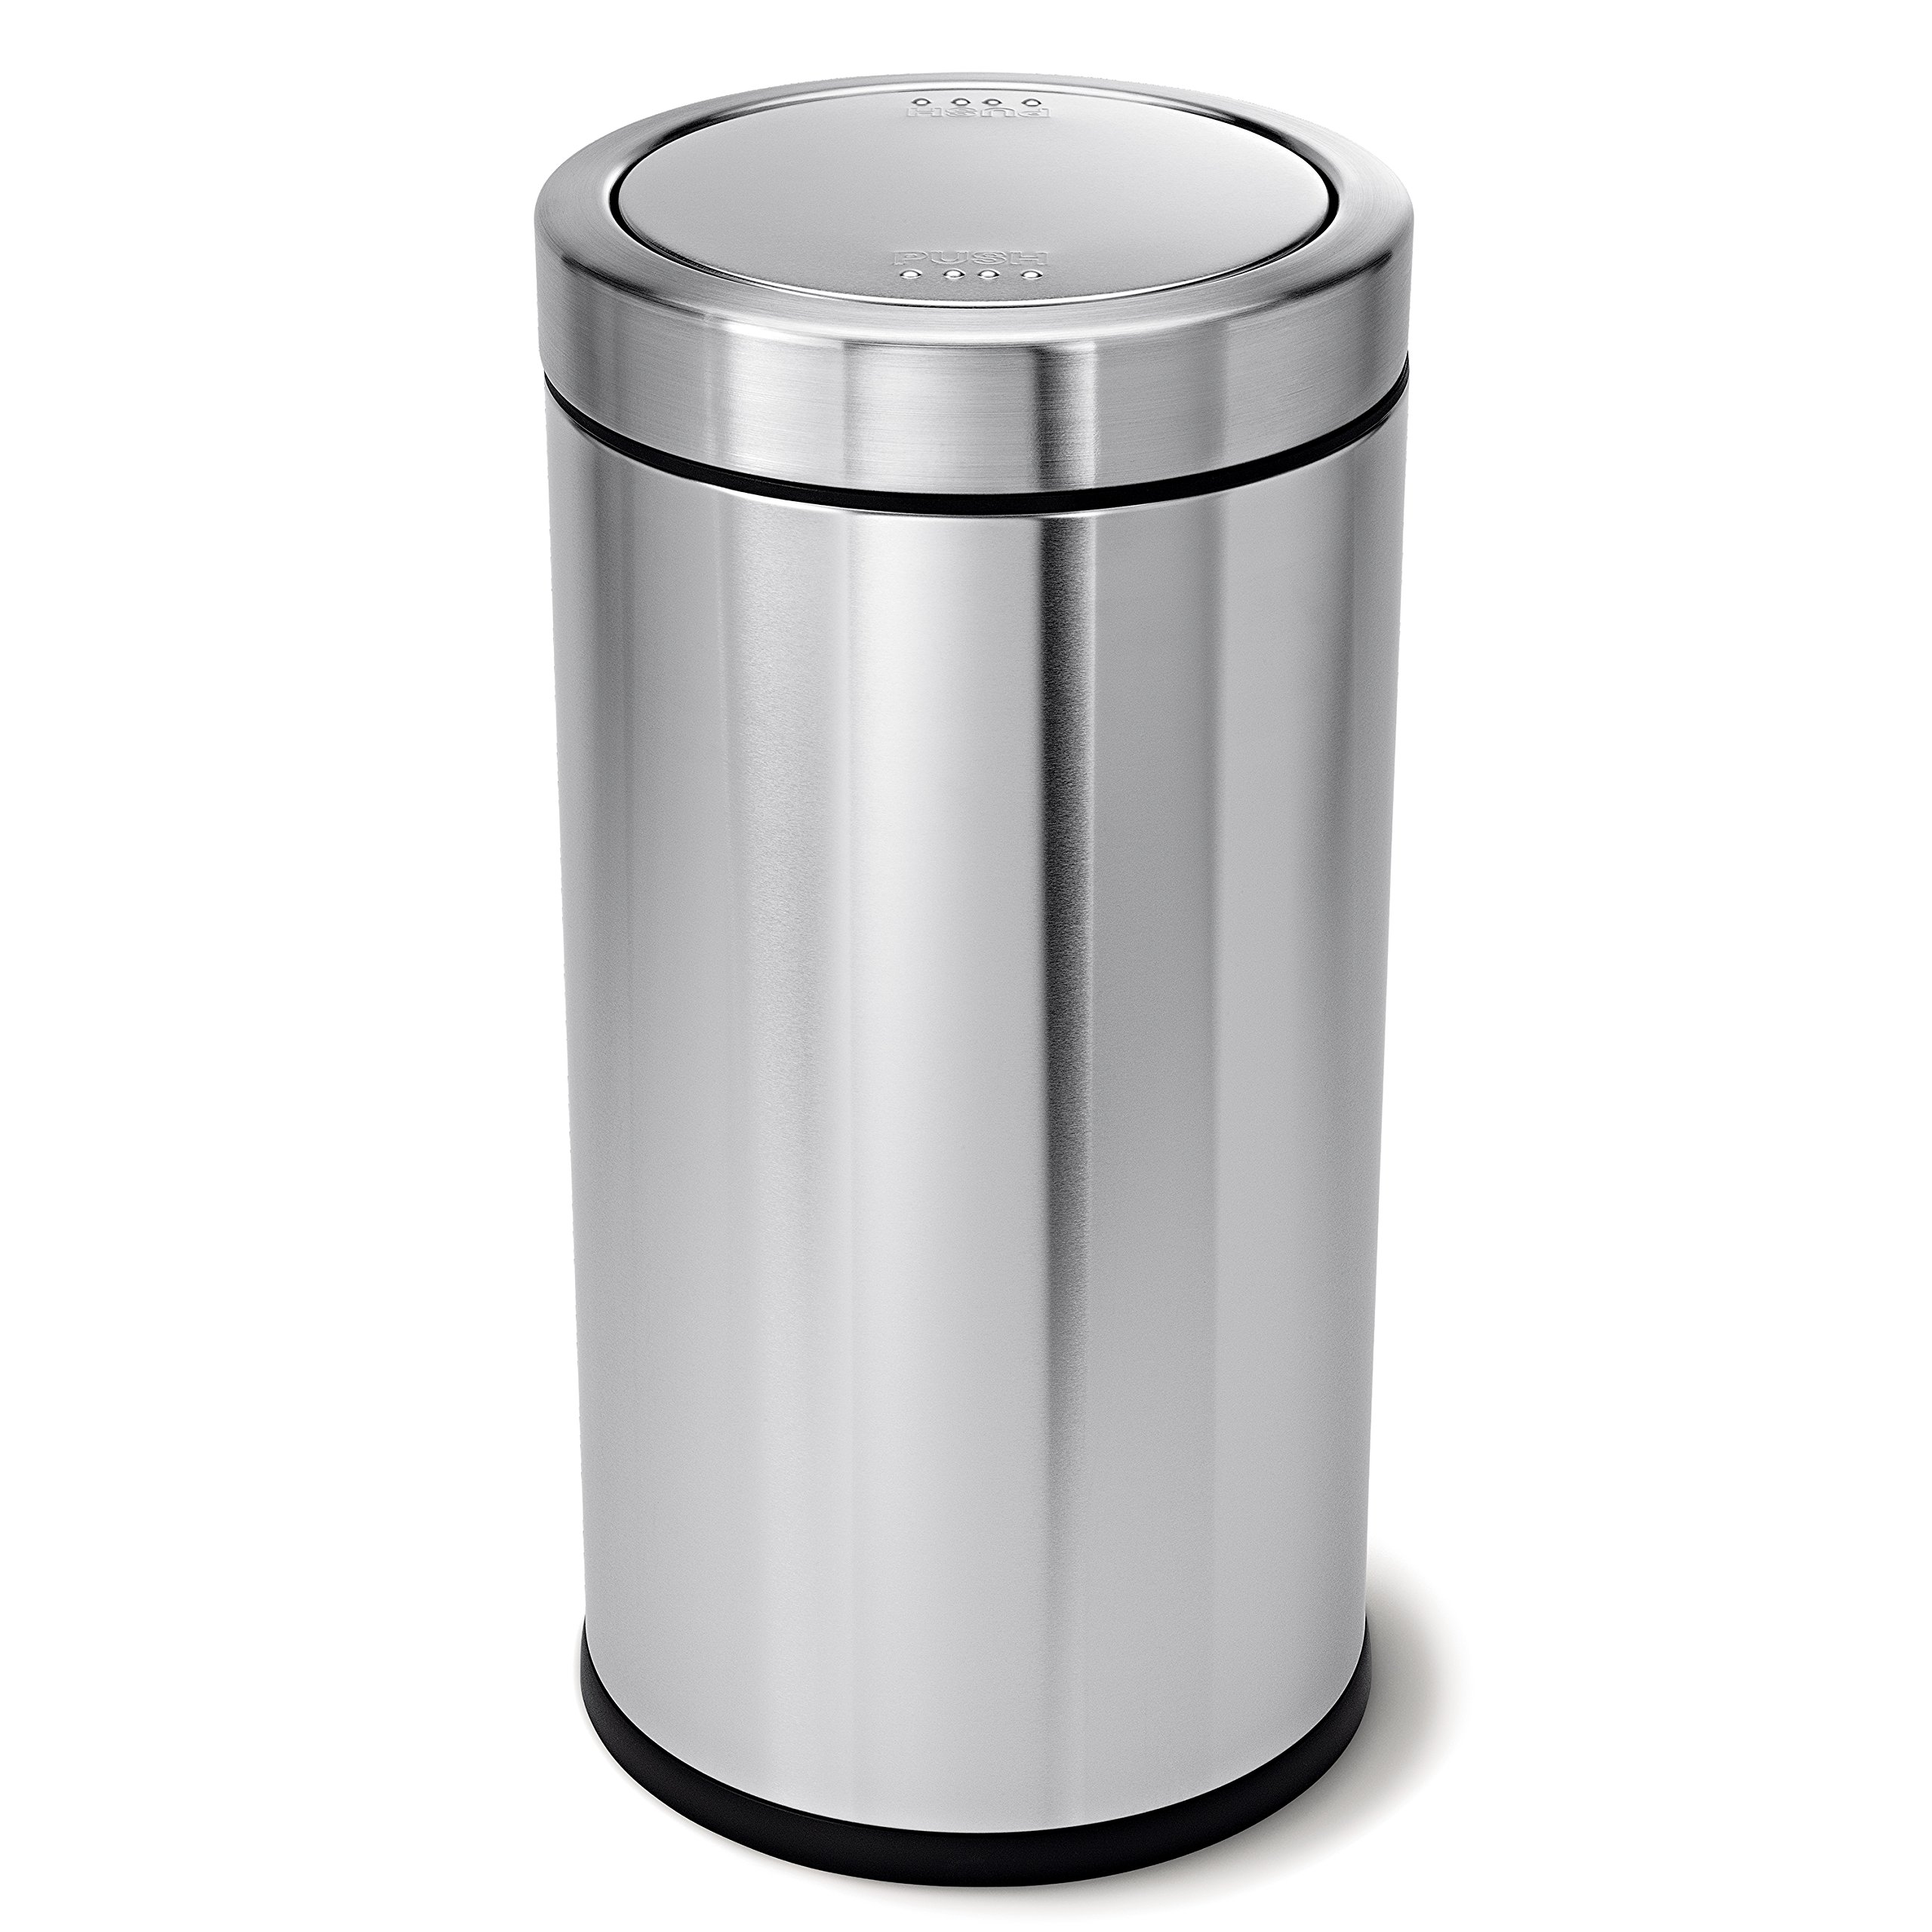 simplehuman Swing Top Trash Can, Commercial Grade, Stainless Steel, 55 L / 14.5 Gal by simplehuman